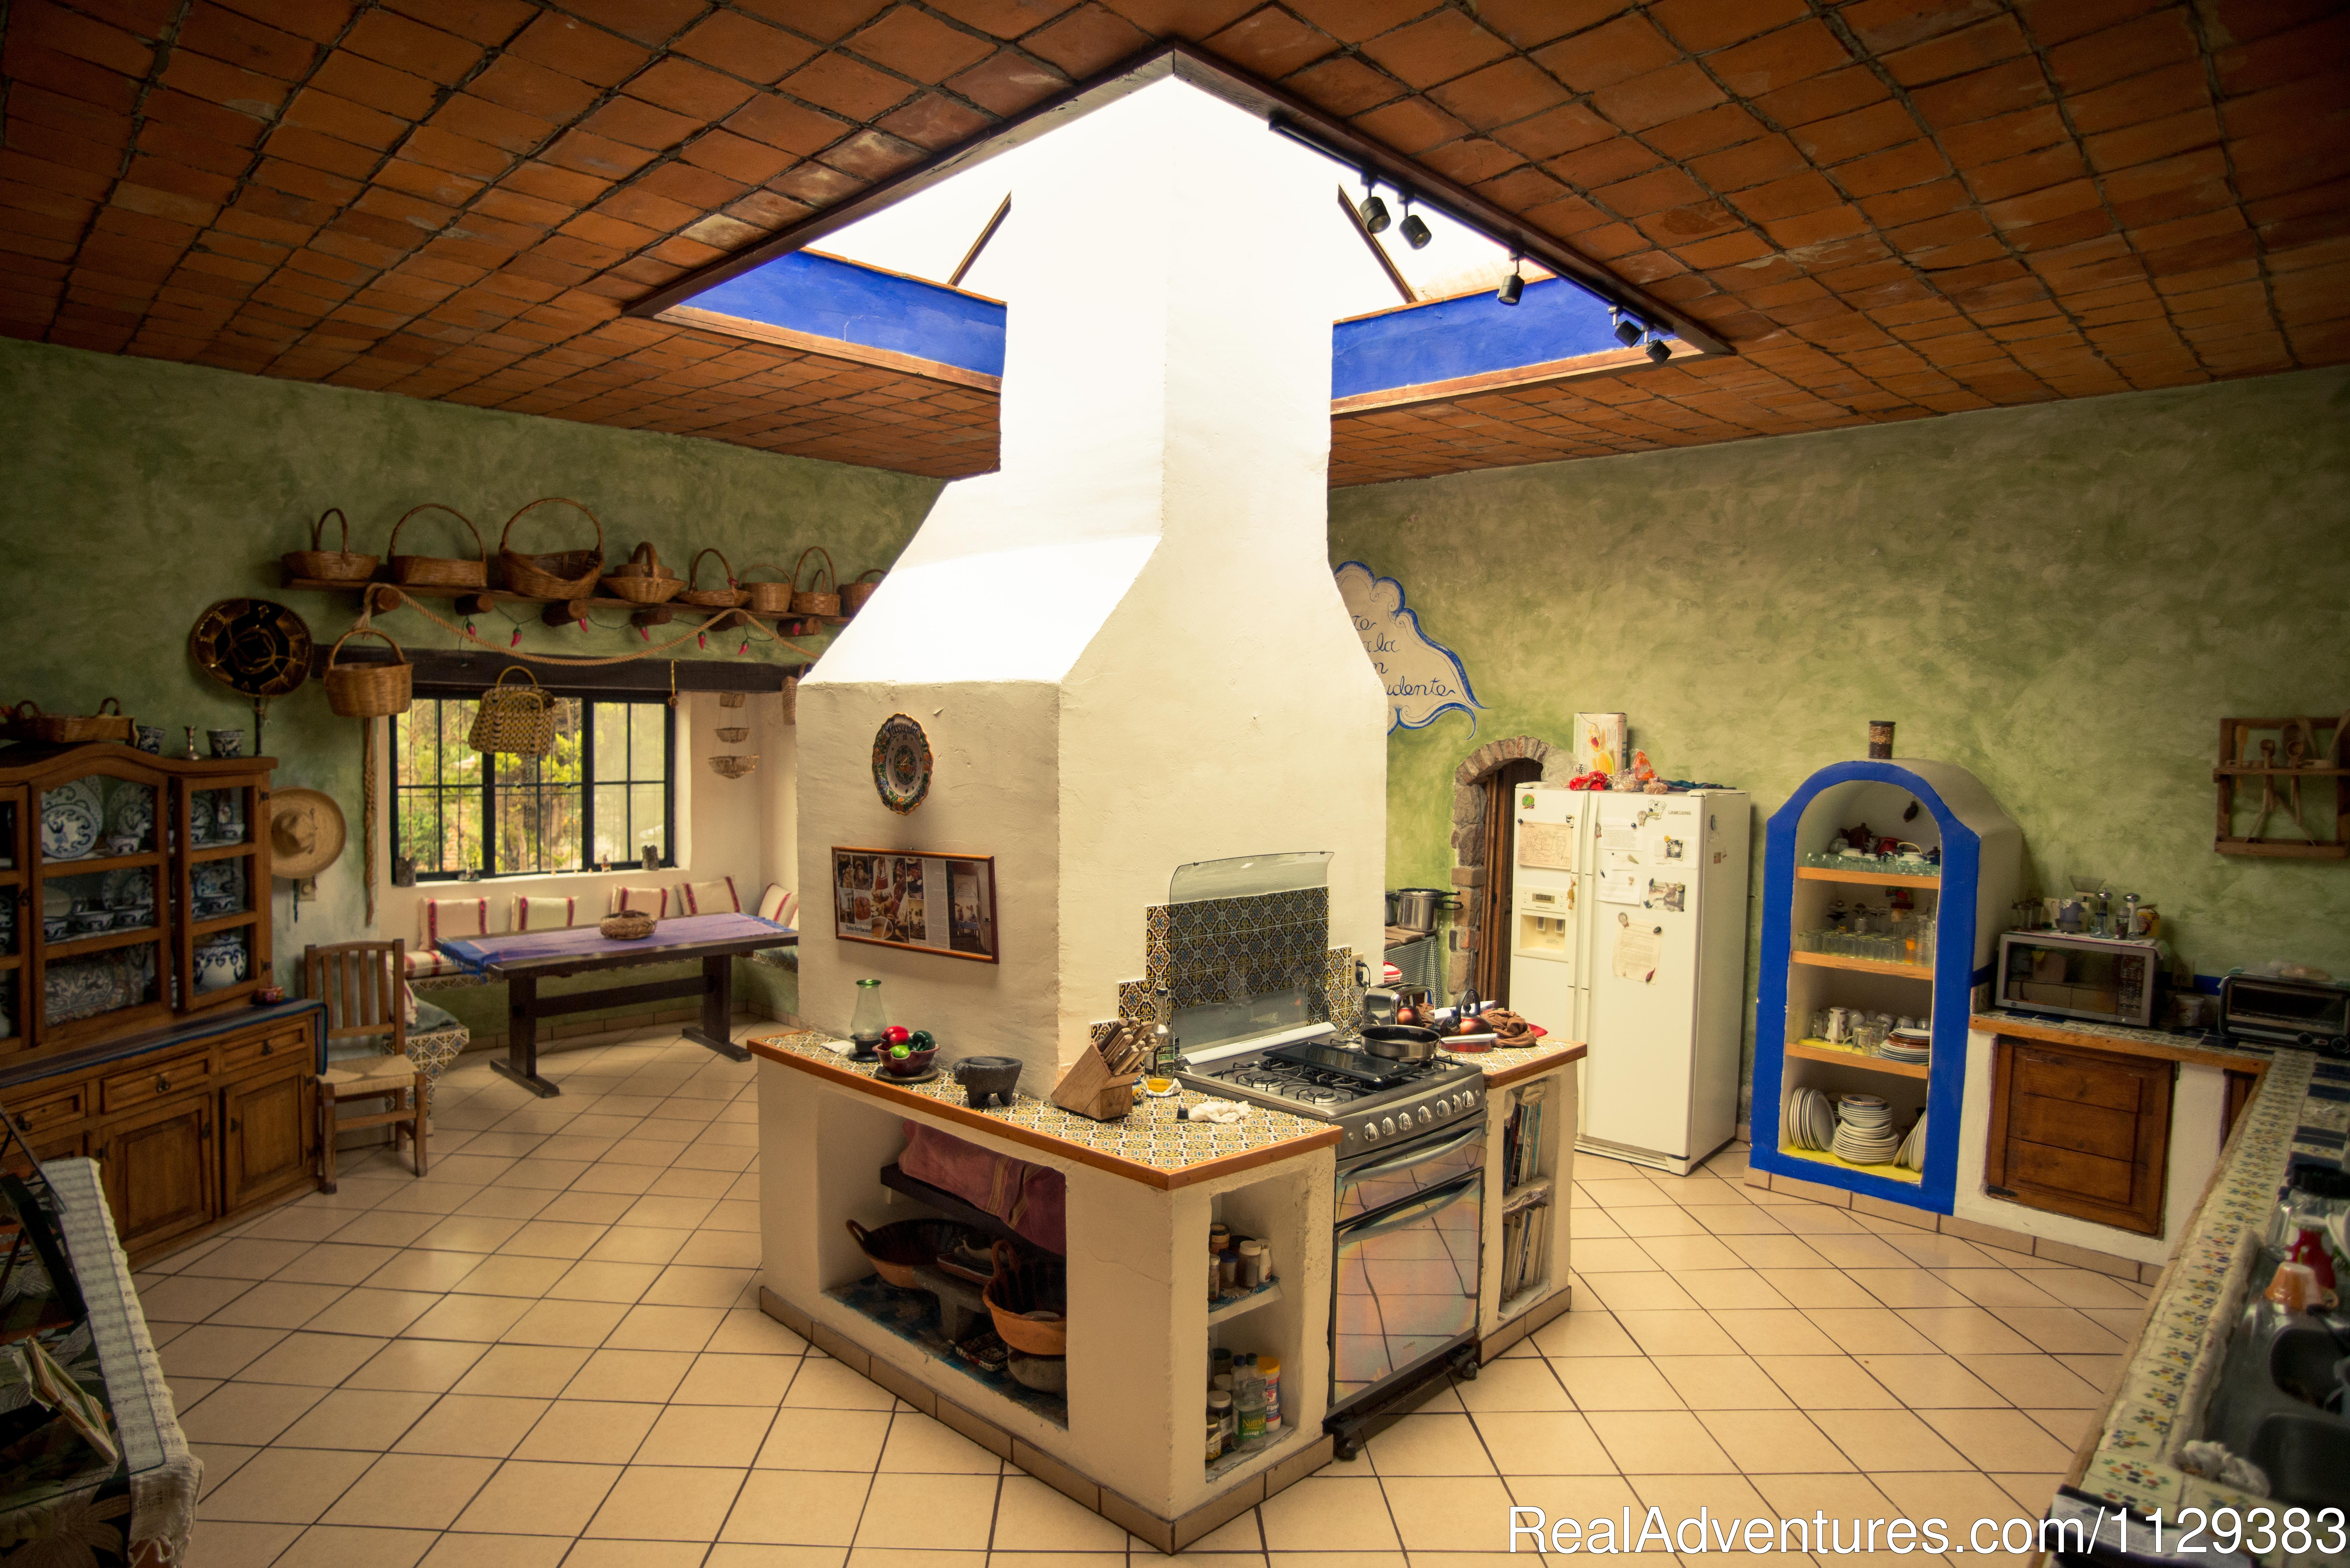 Casa Carmelita - Kitchen | Image #7/22 | Mexican Home Cooking School boutique accommodation